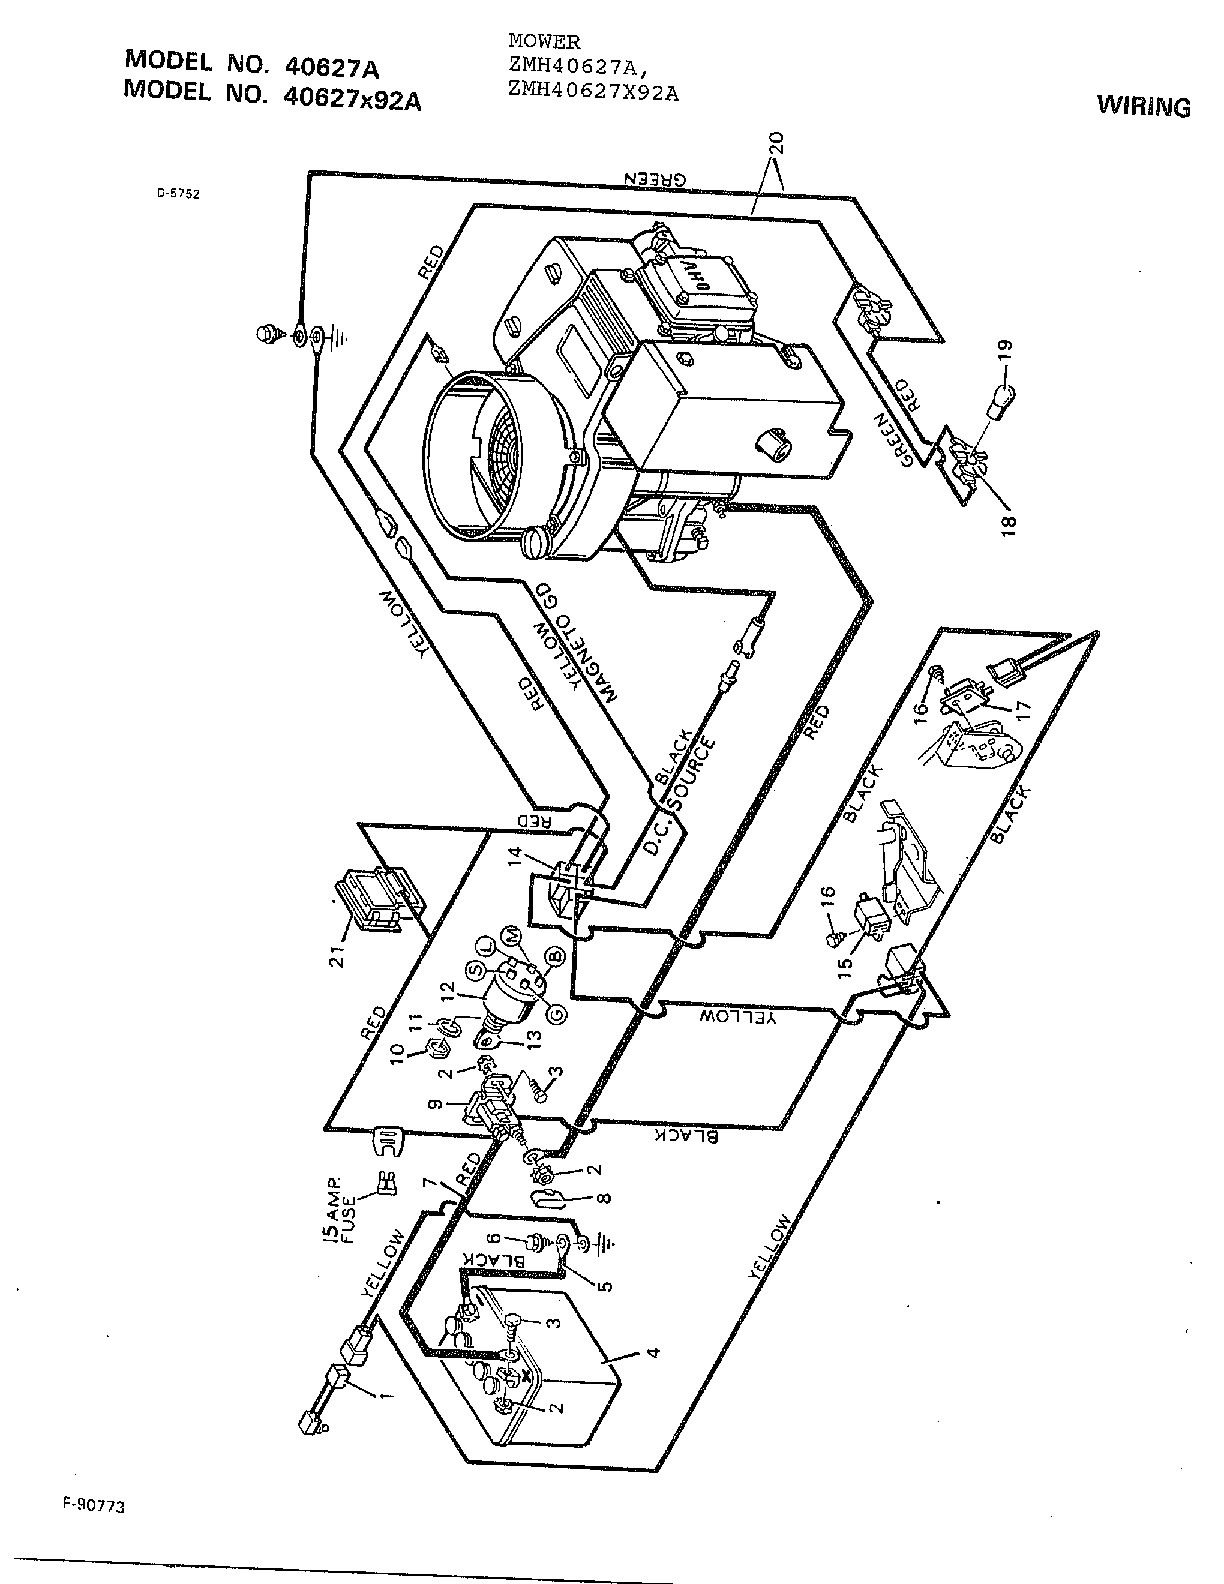 WIRING Diagram & Parts List for Model 40627x92a Murray